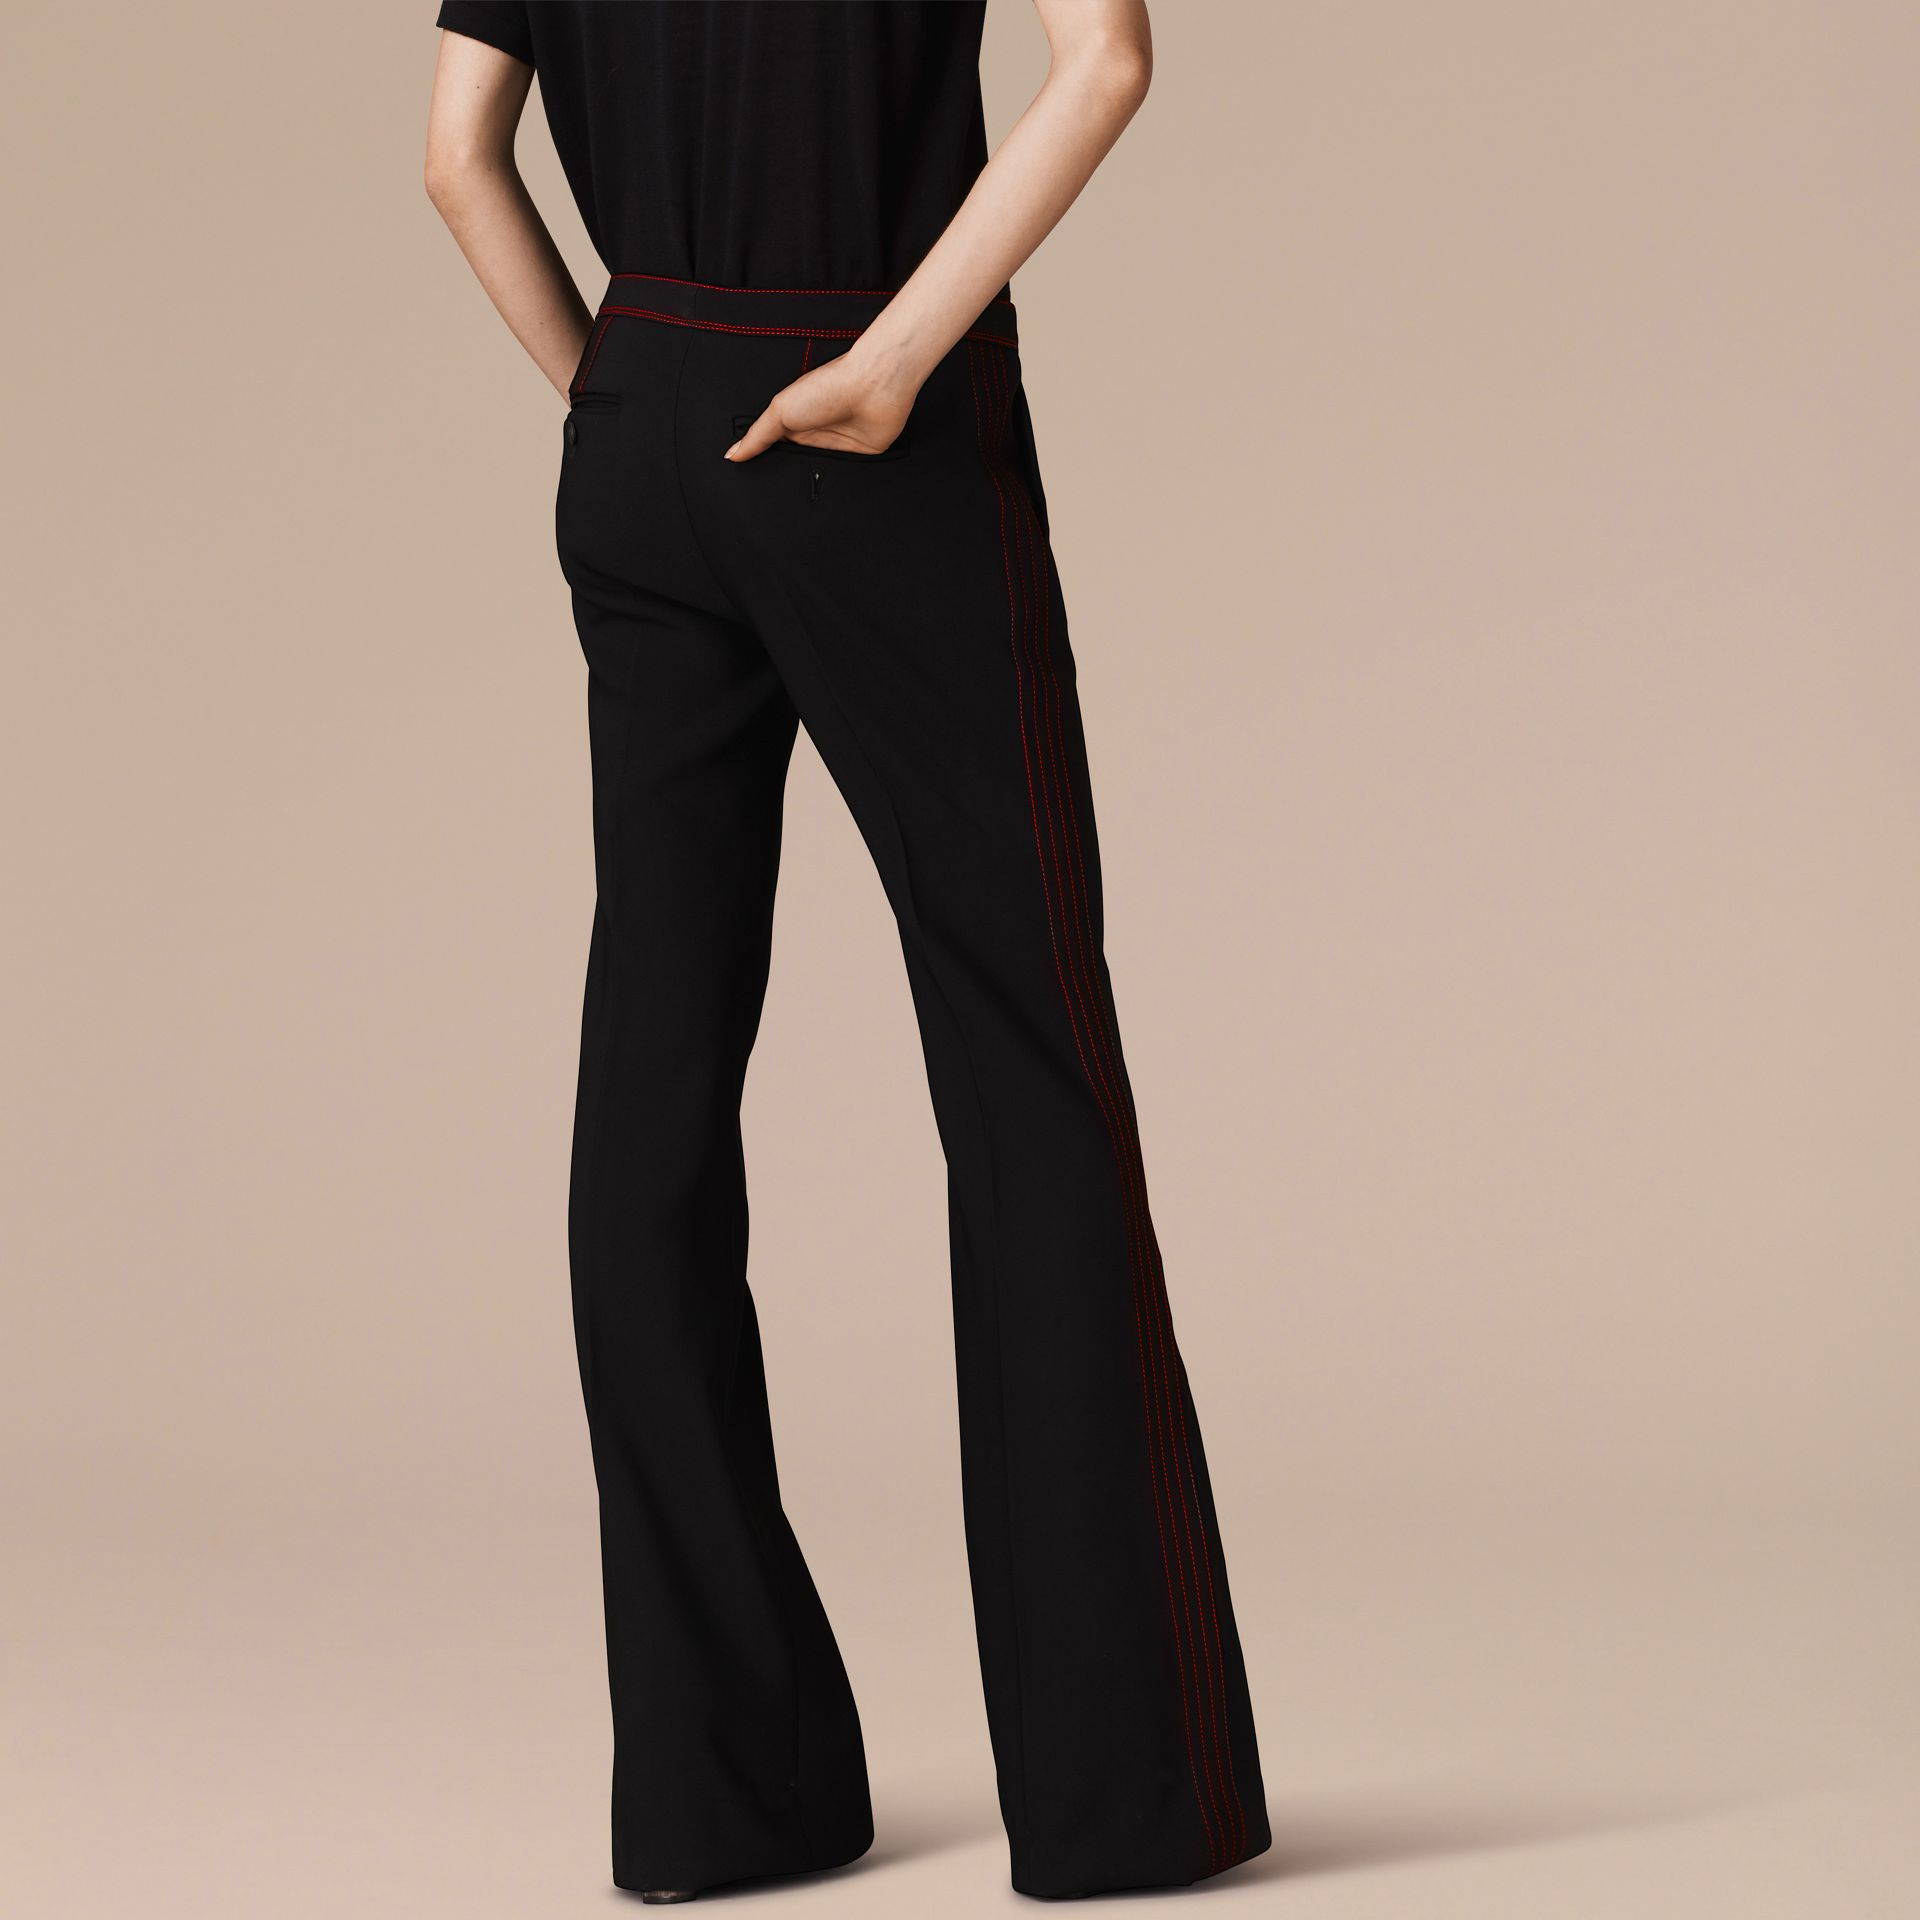 Black Stretch Boot-cut Trousers - gallery image 3